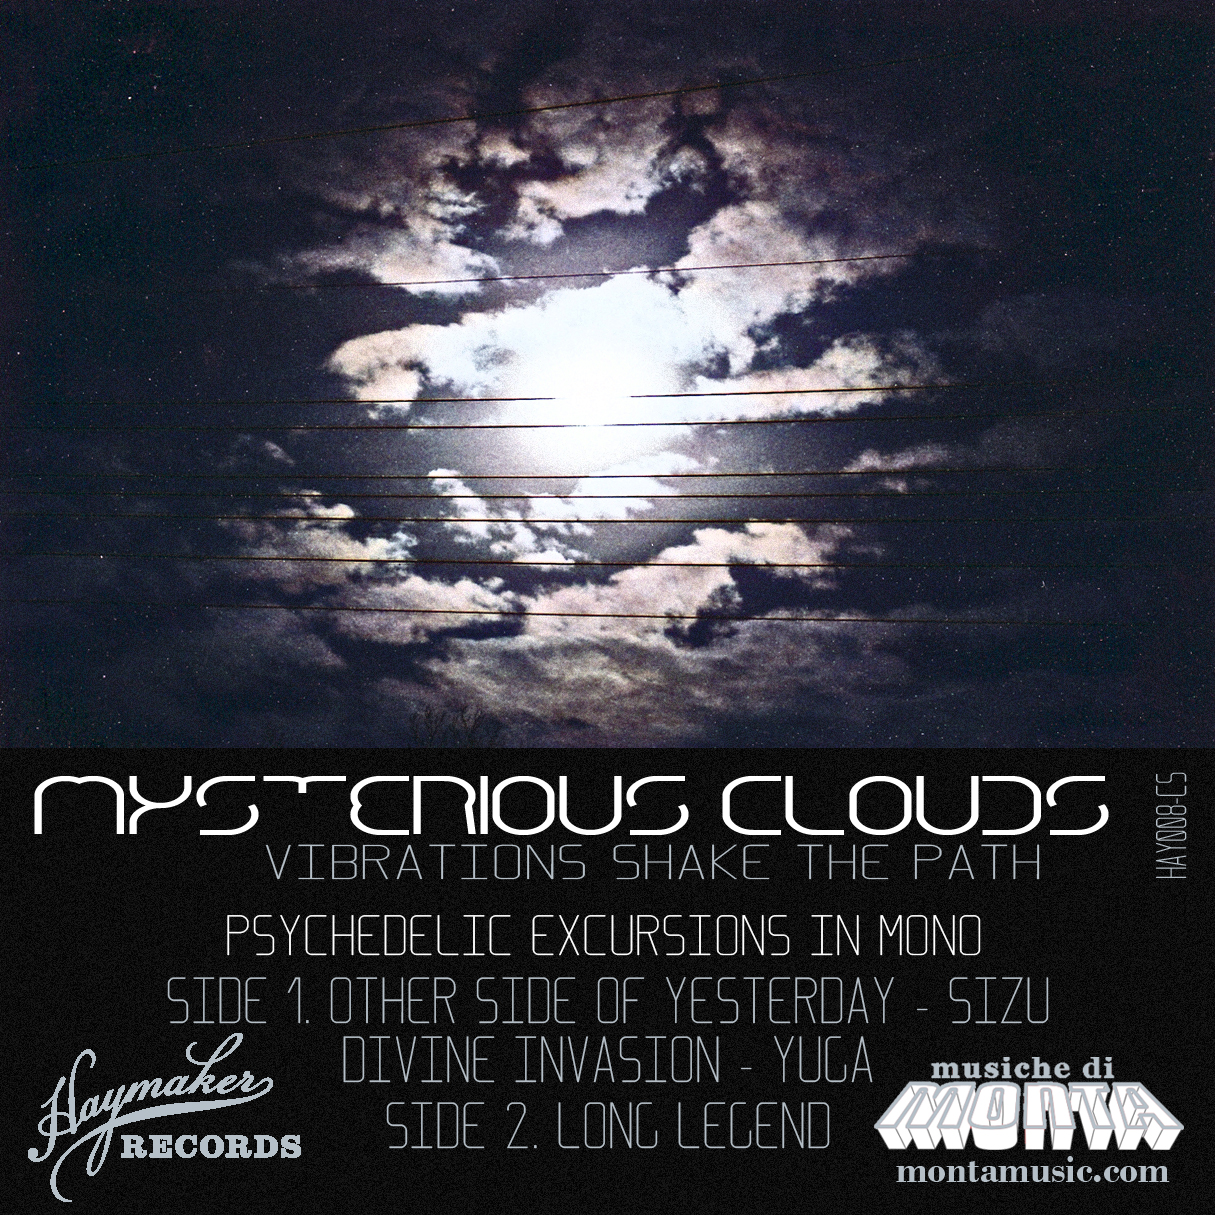 Mysterious Clouds - Vibrations Shake the Path